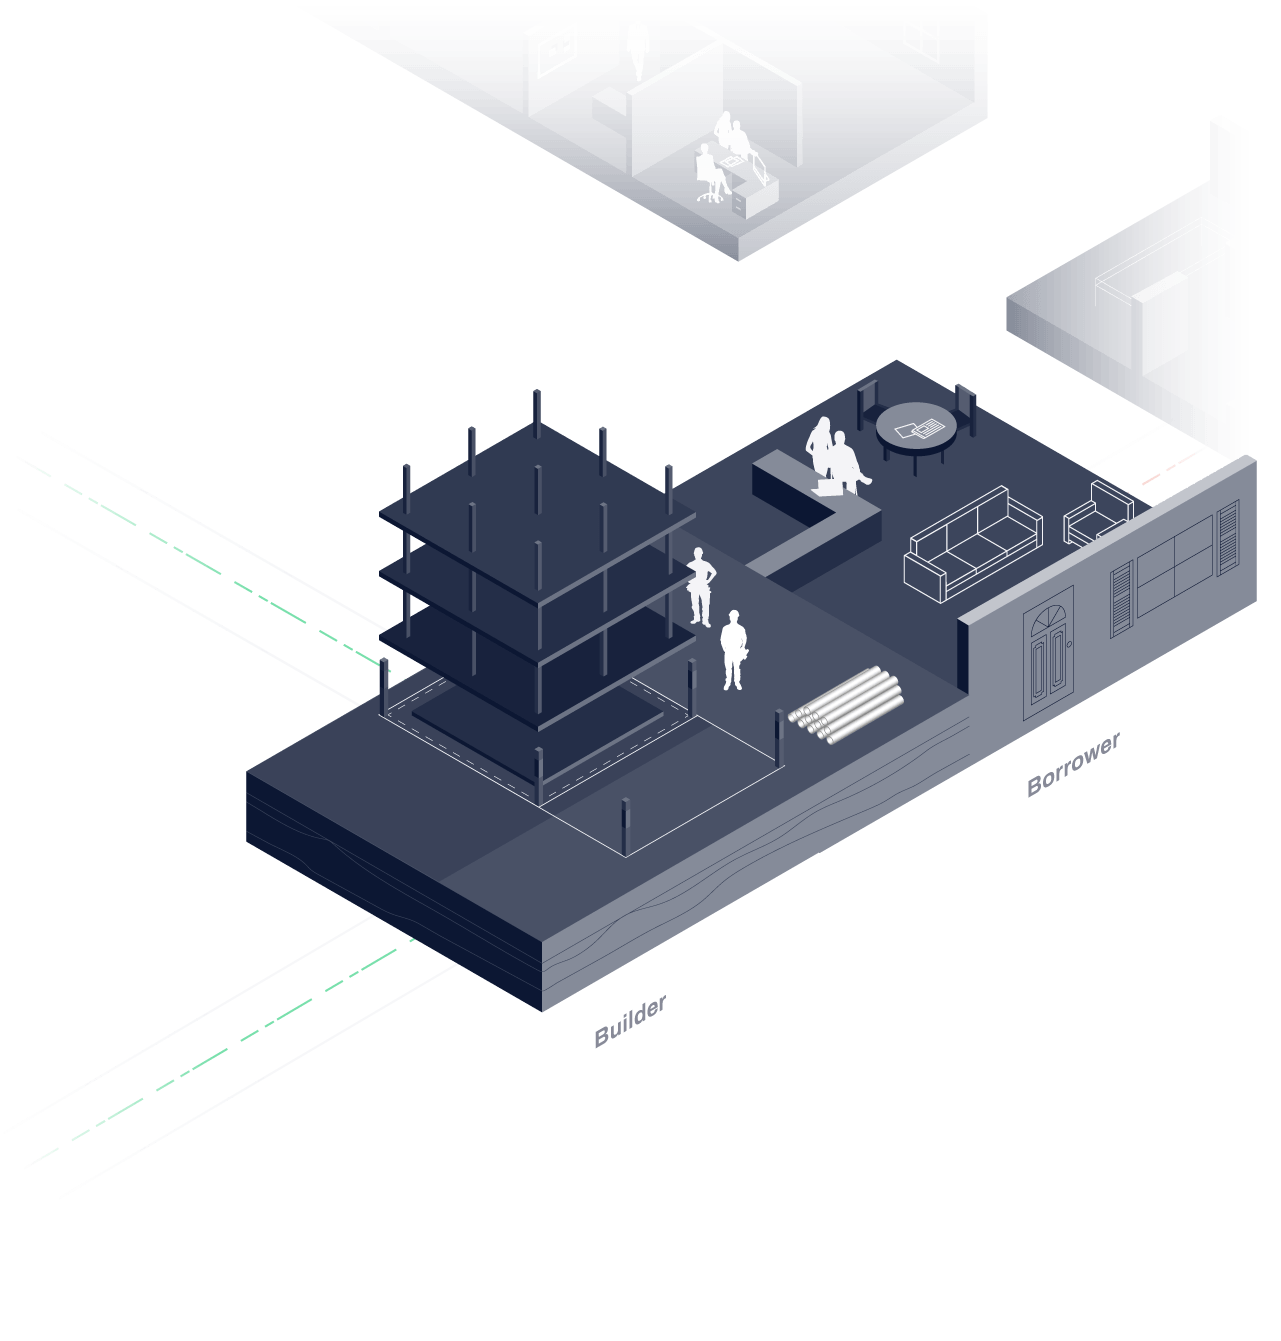 Construction platform graphic